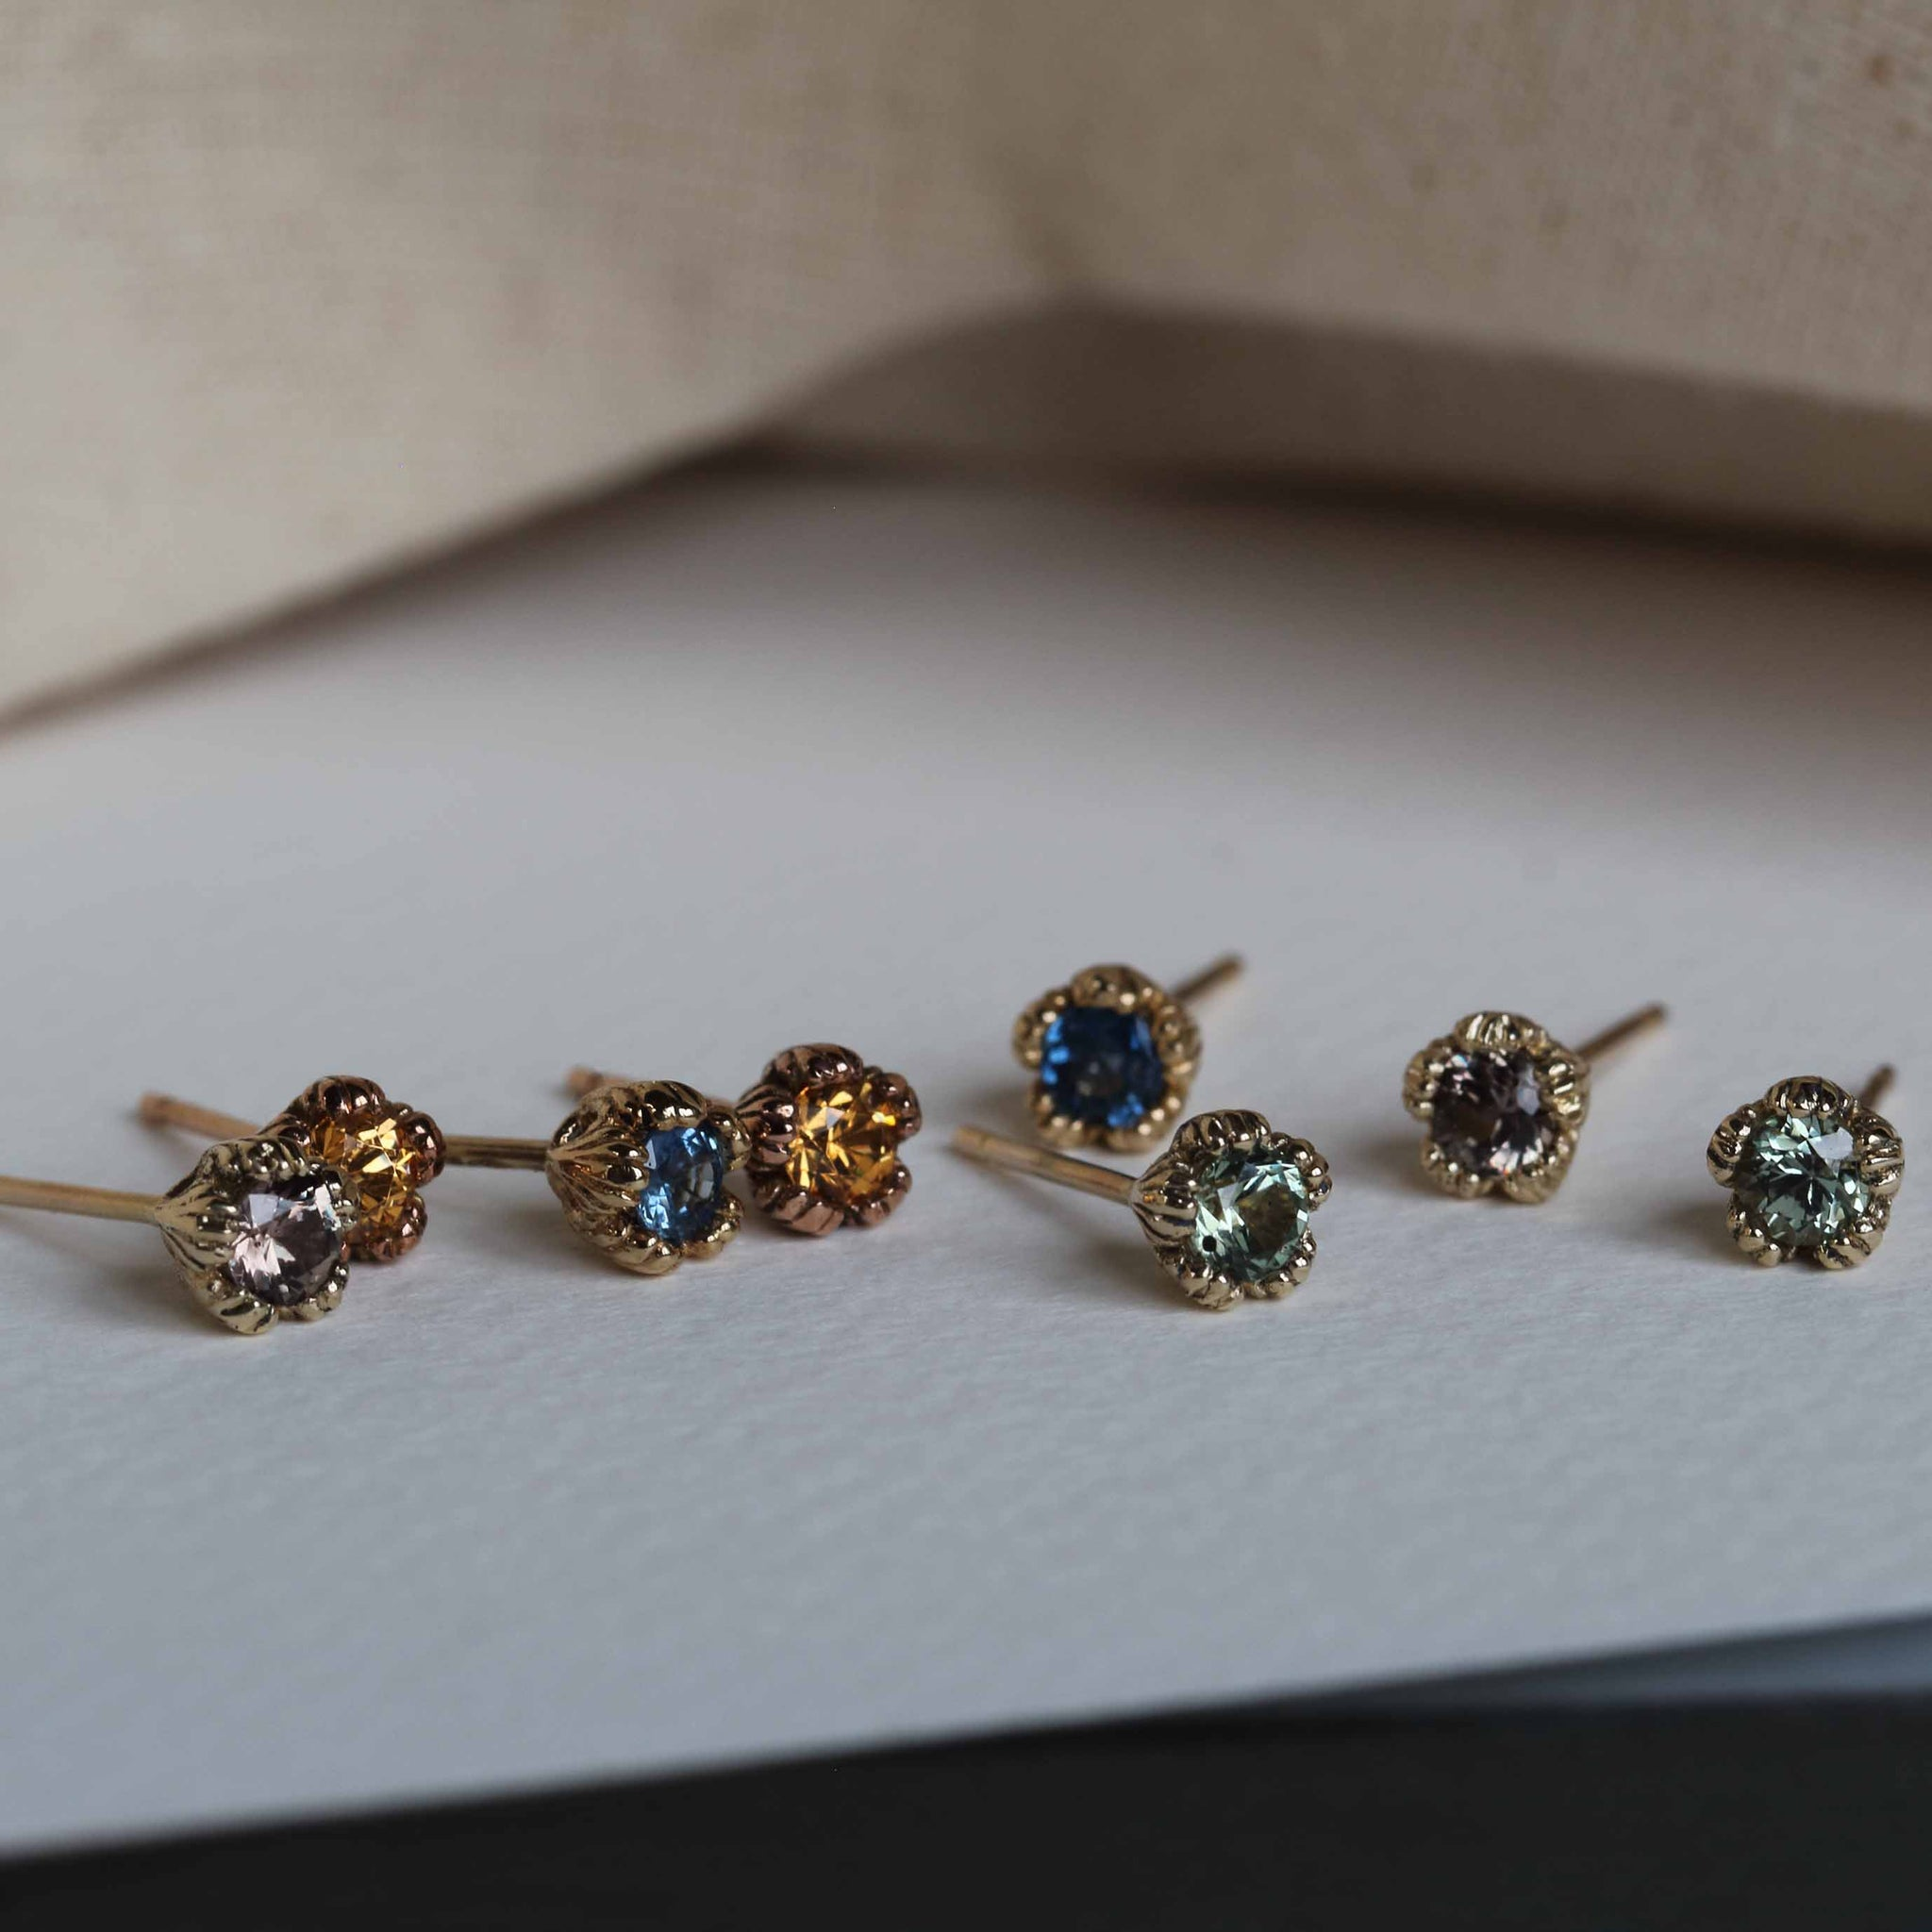 A selection of gemstone earrings.